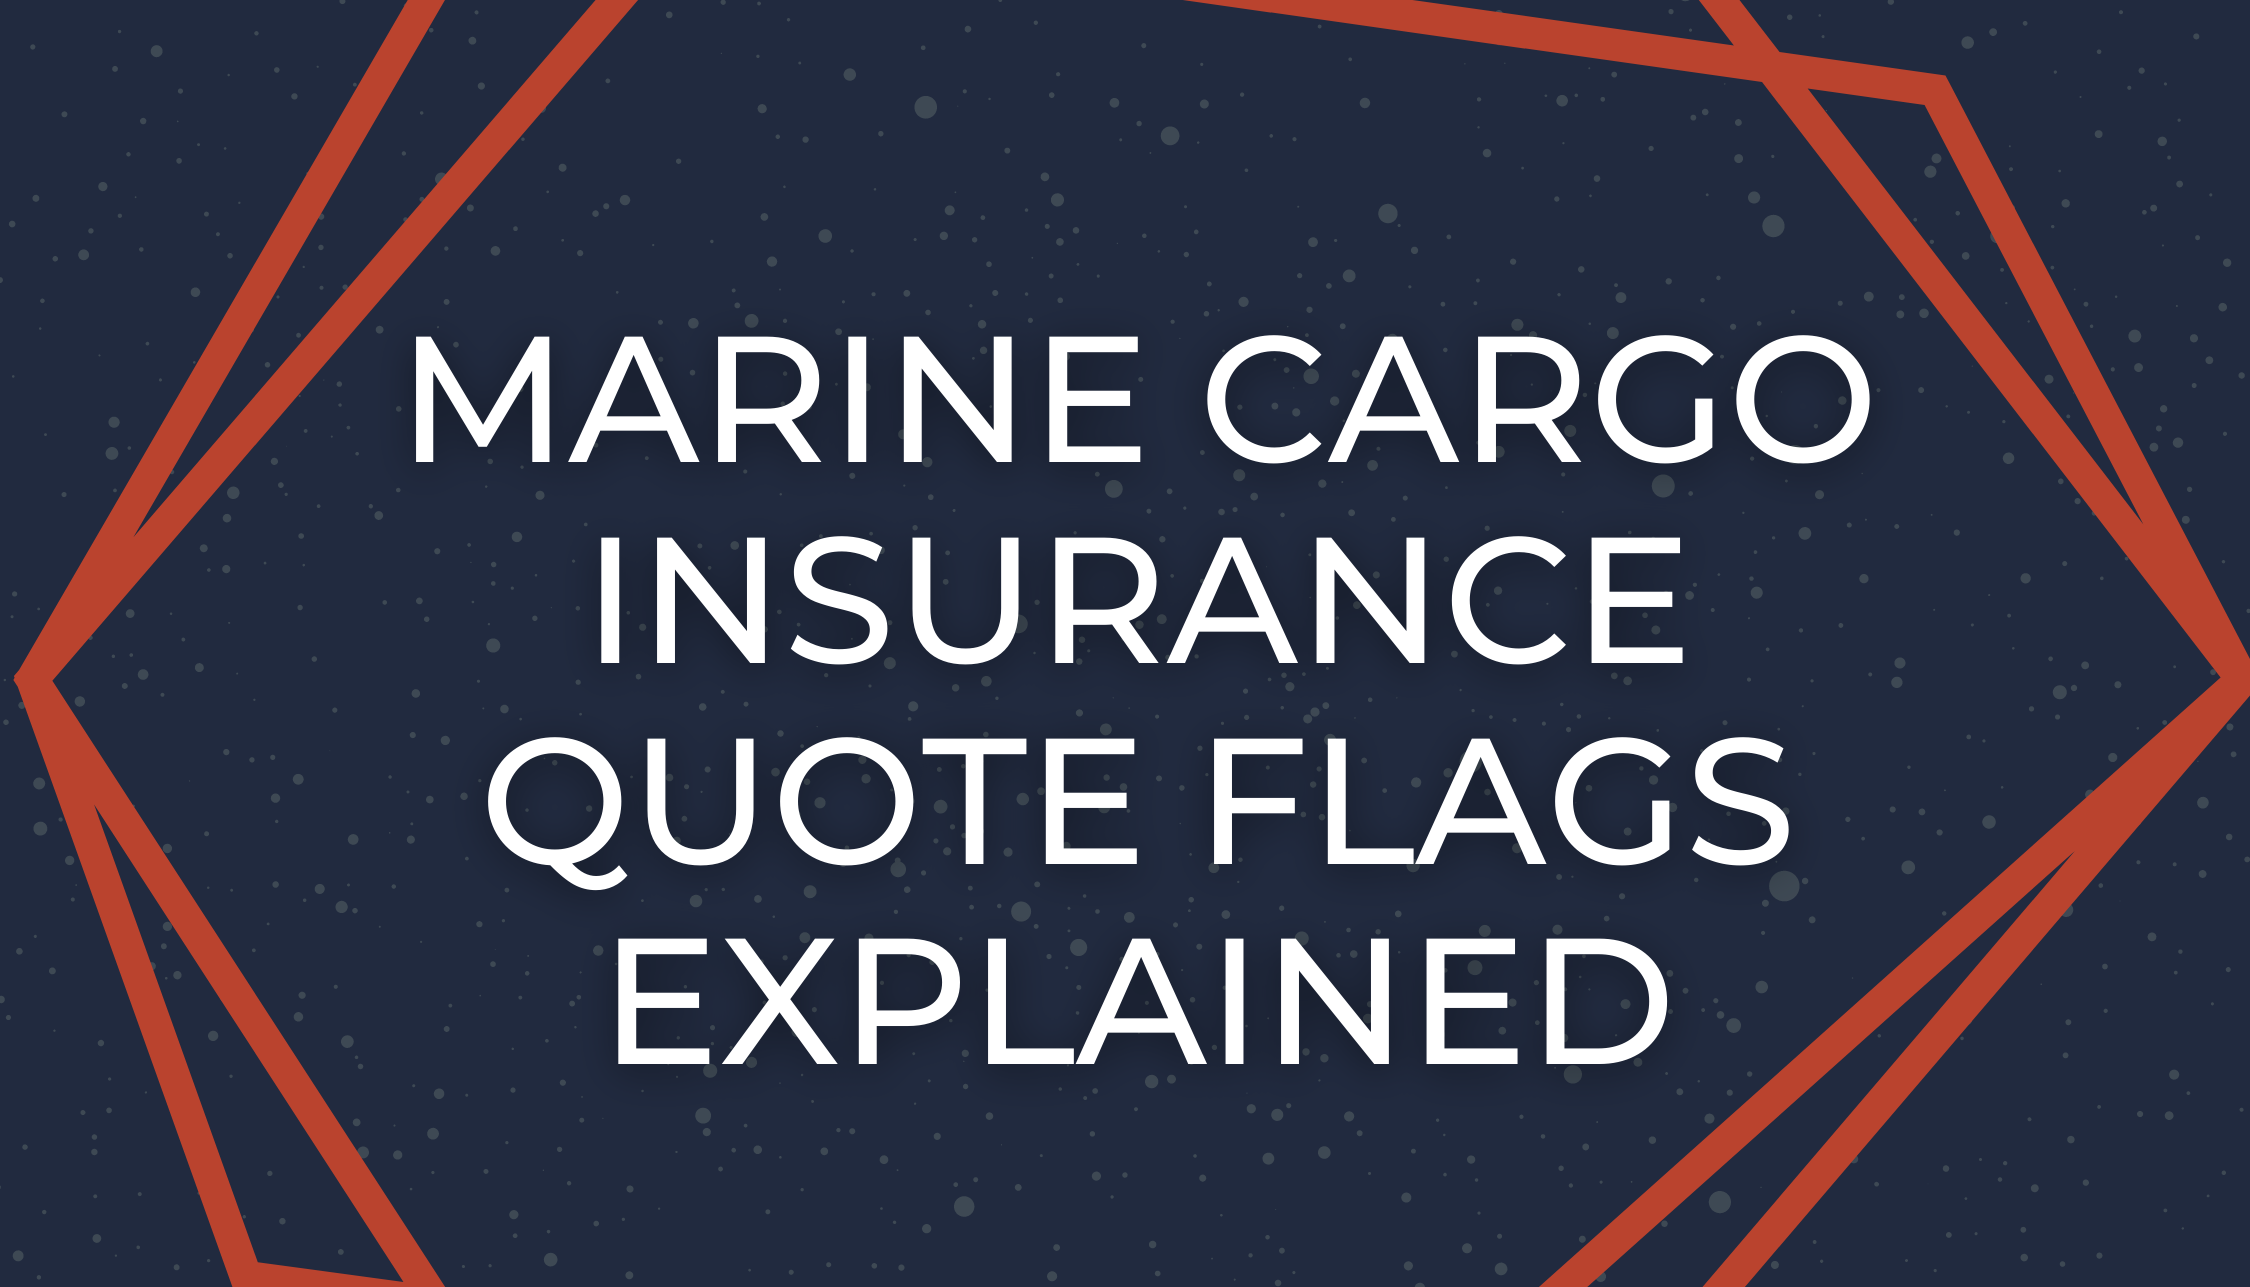 Marine Cargo Insurance Quote Flags Explained